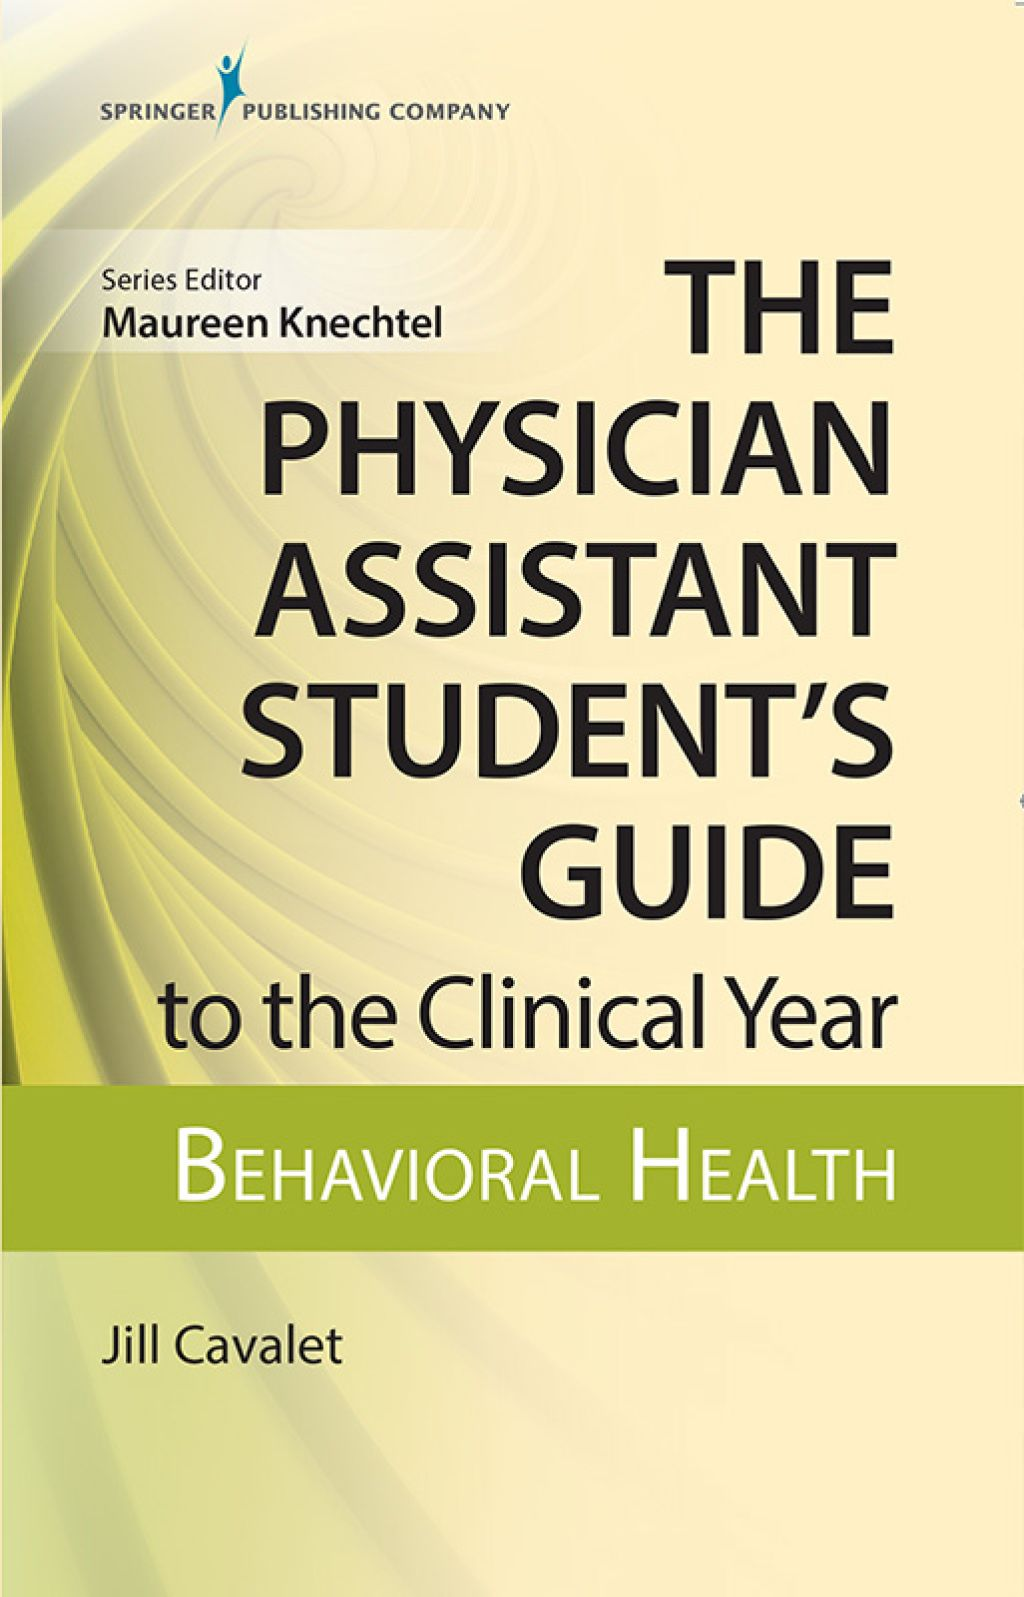 The Physician Assistant Student's Guide to the Clinical